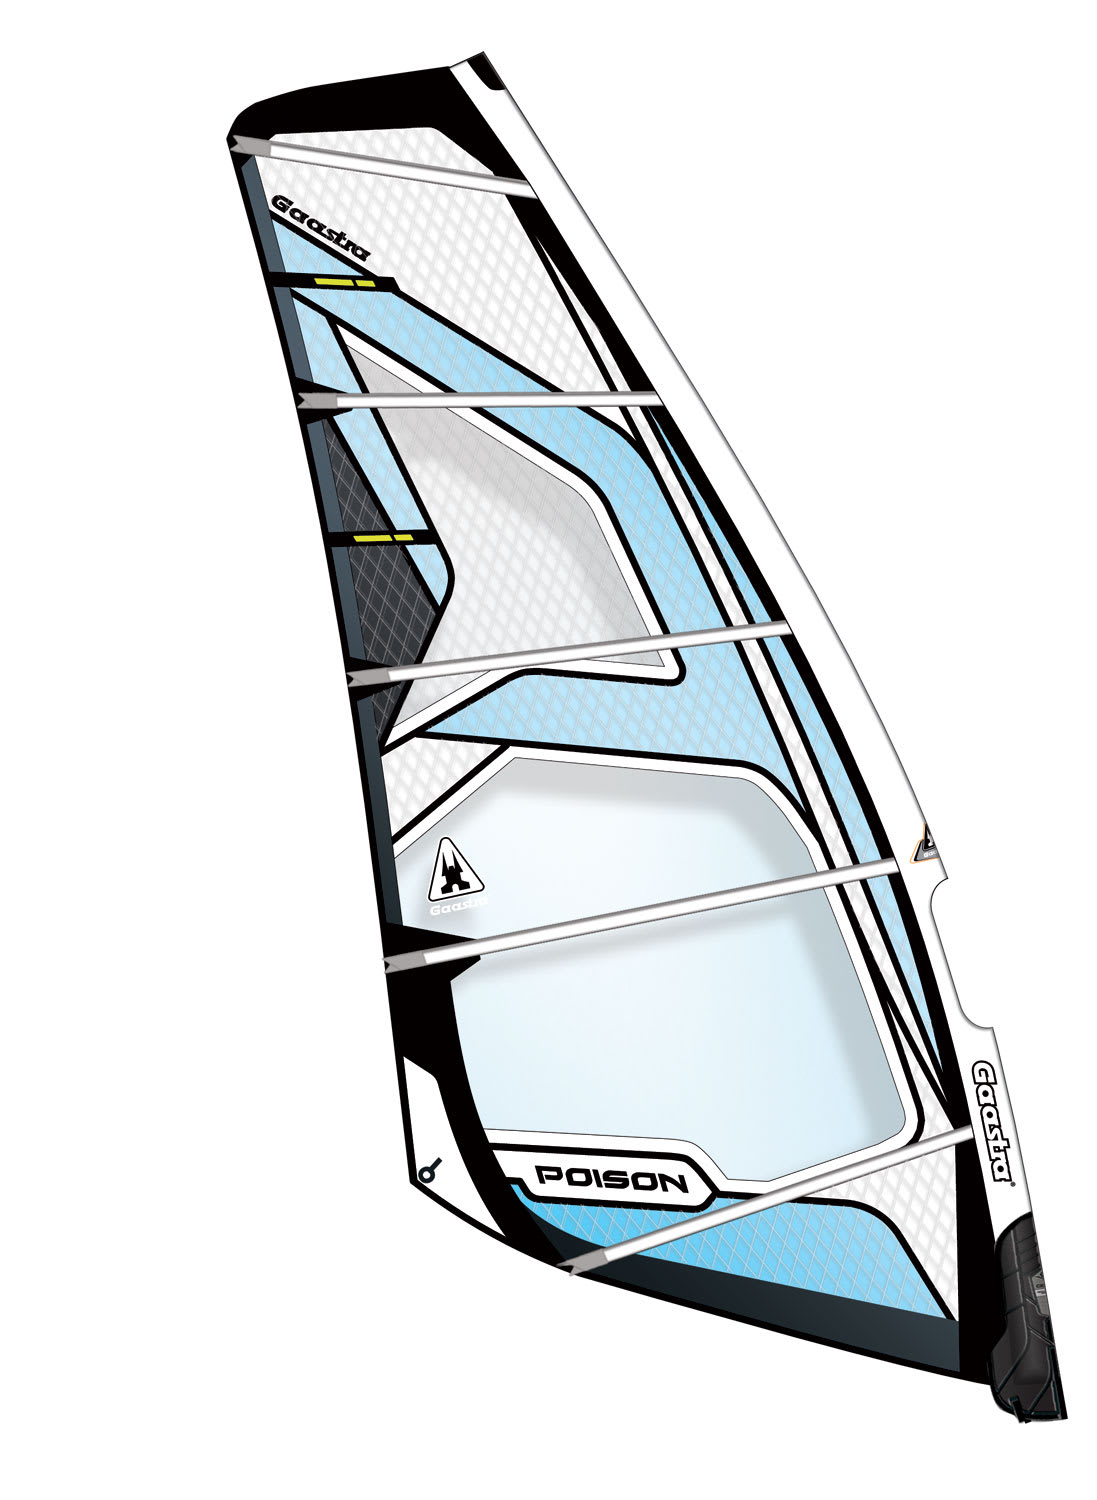 Shop for Gaastra Poison Windsurfing Sail 5.8